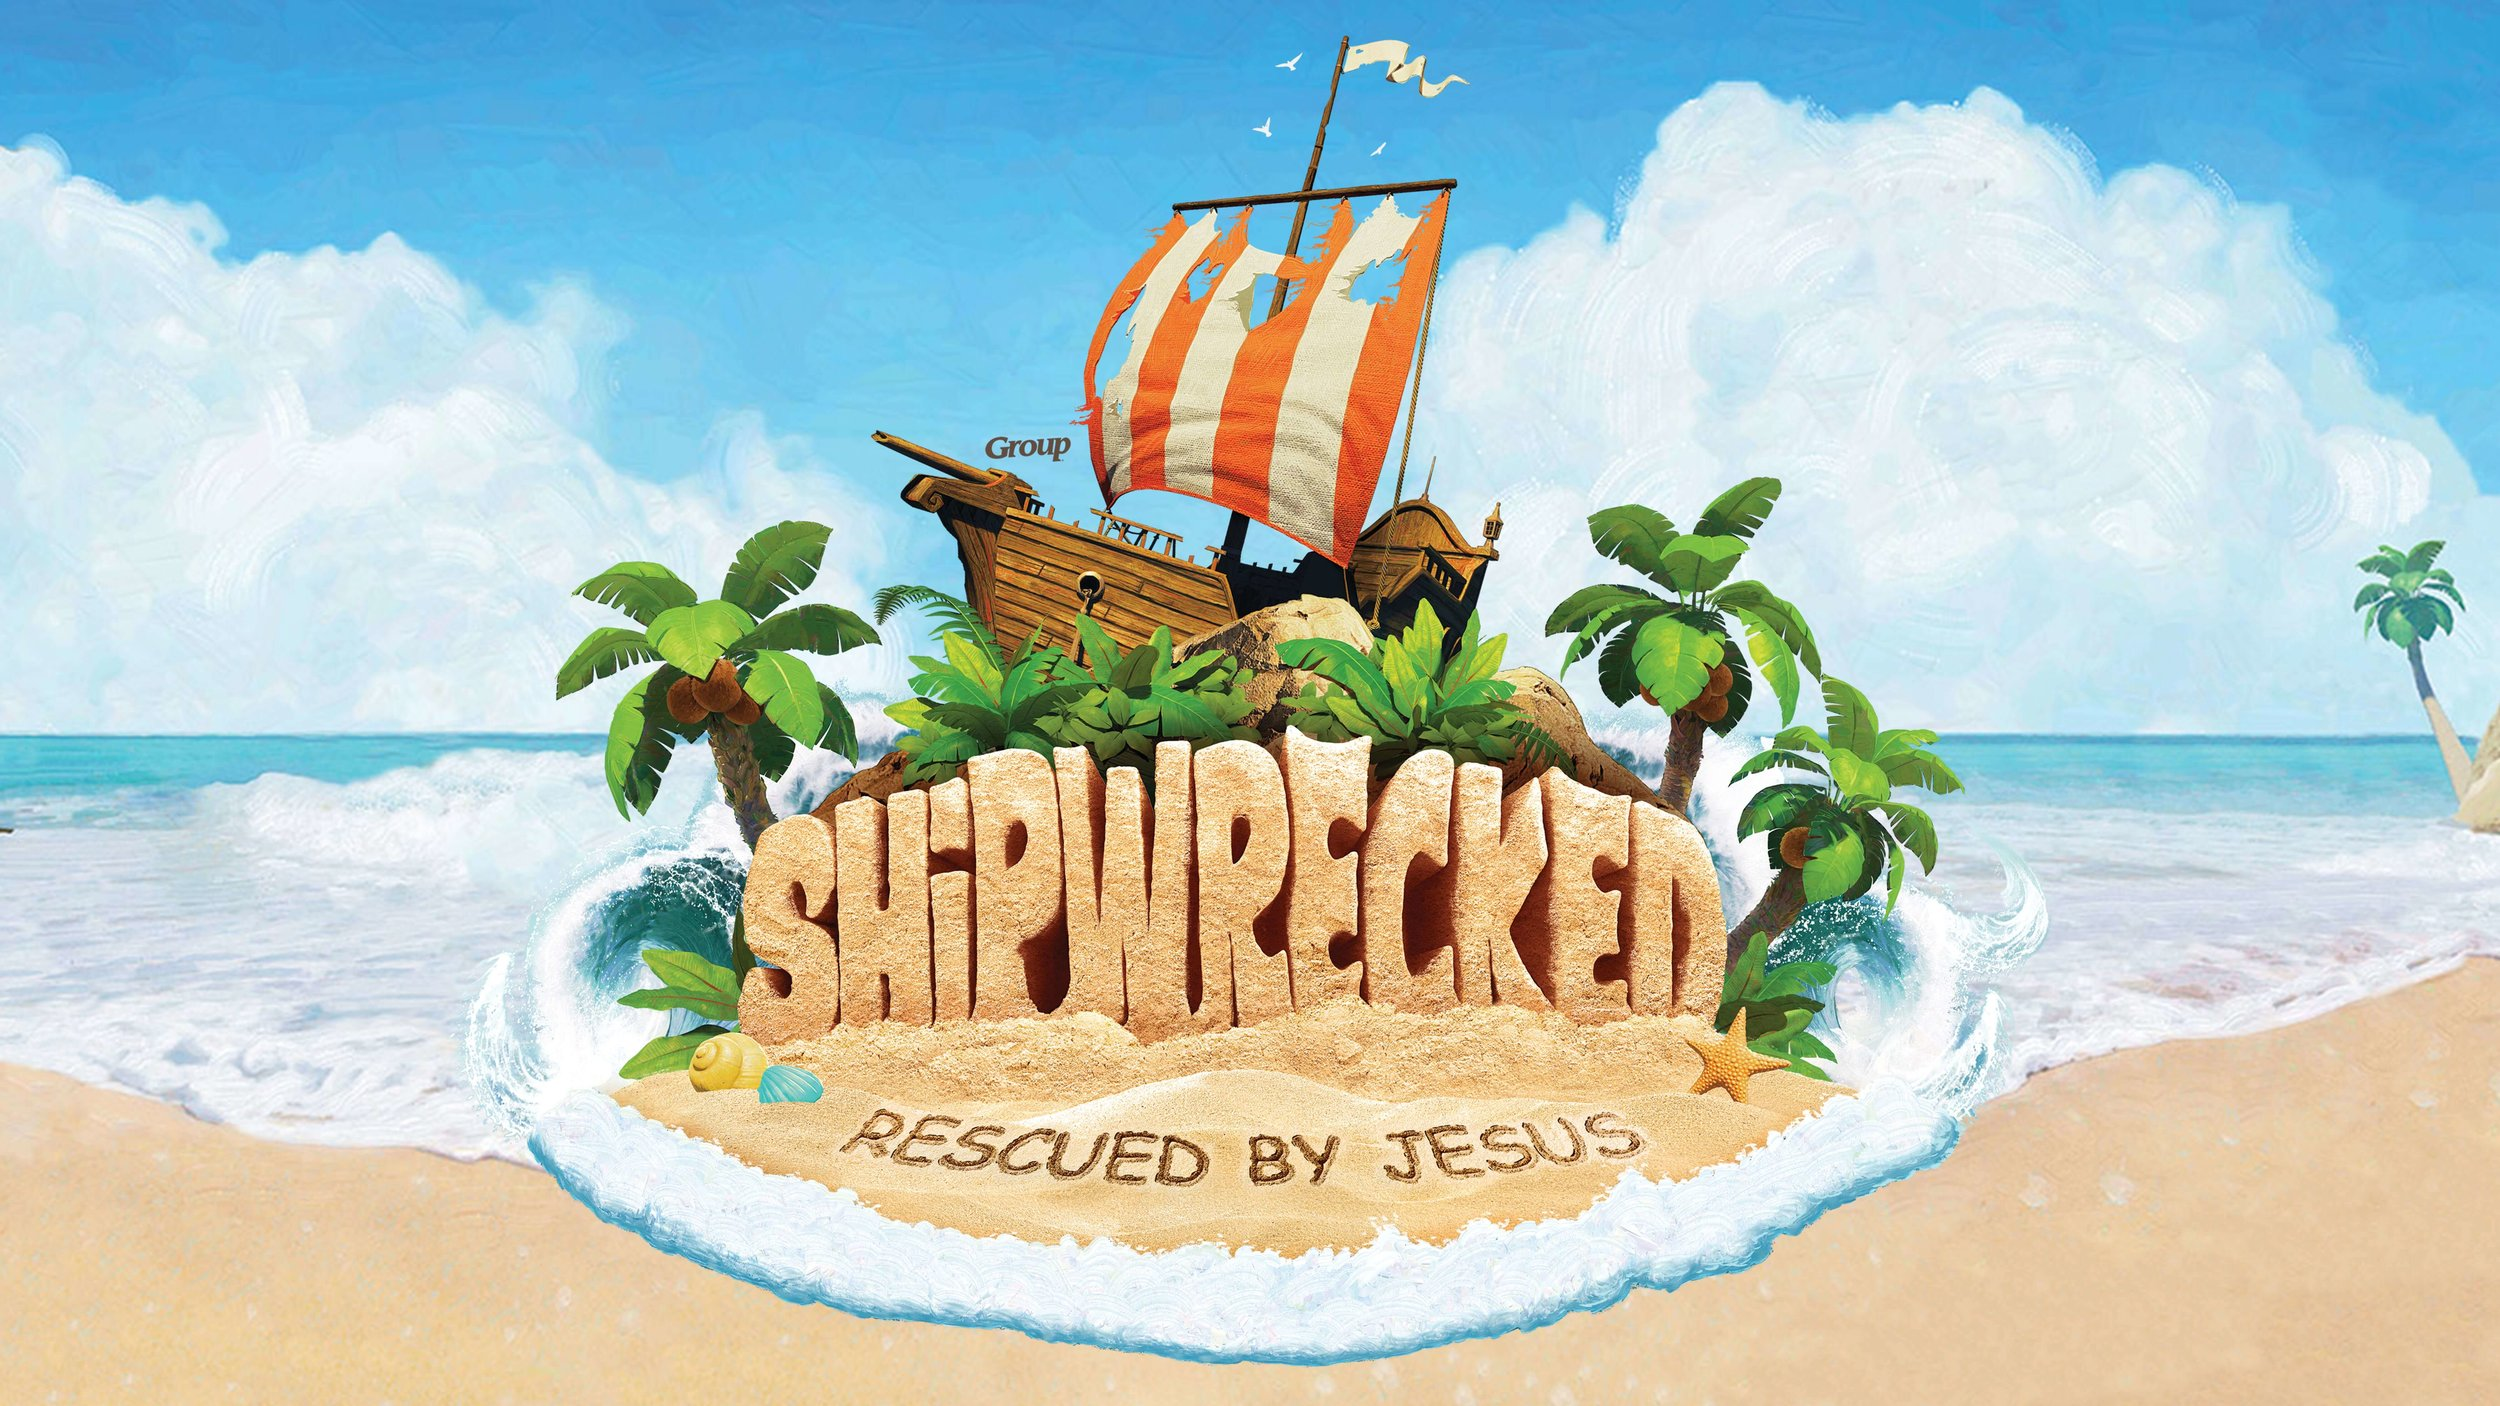 vbs event TV Wide (16-9) copy.jpg